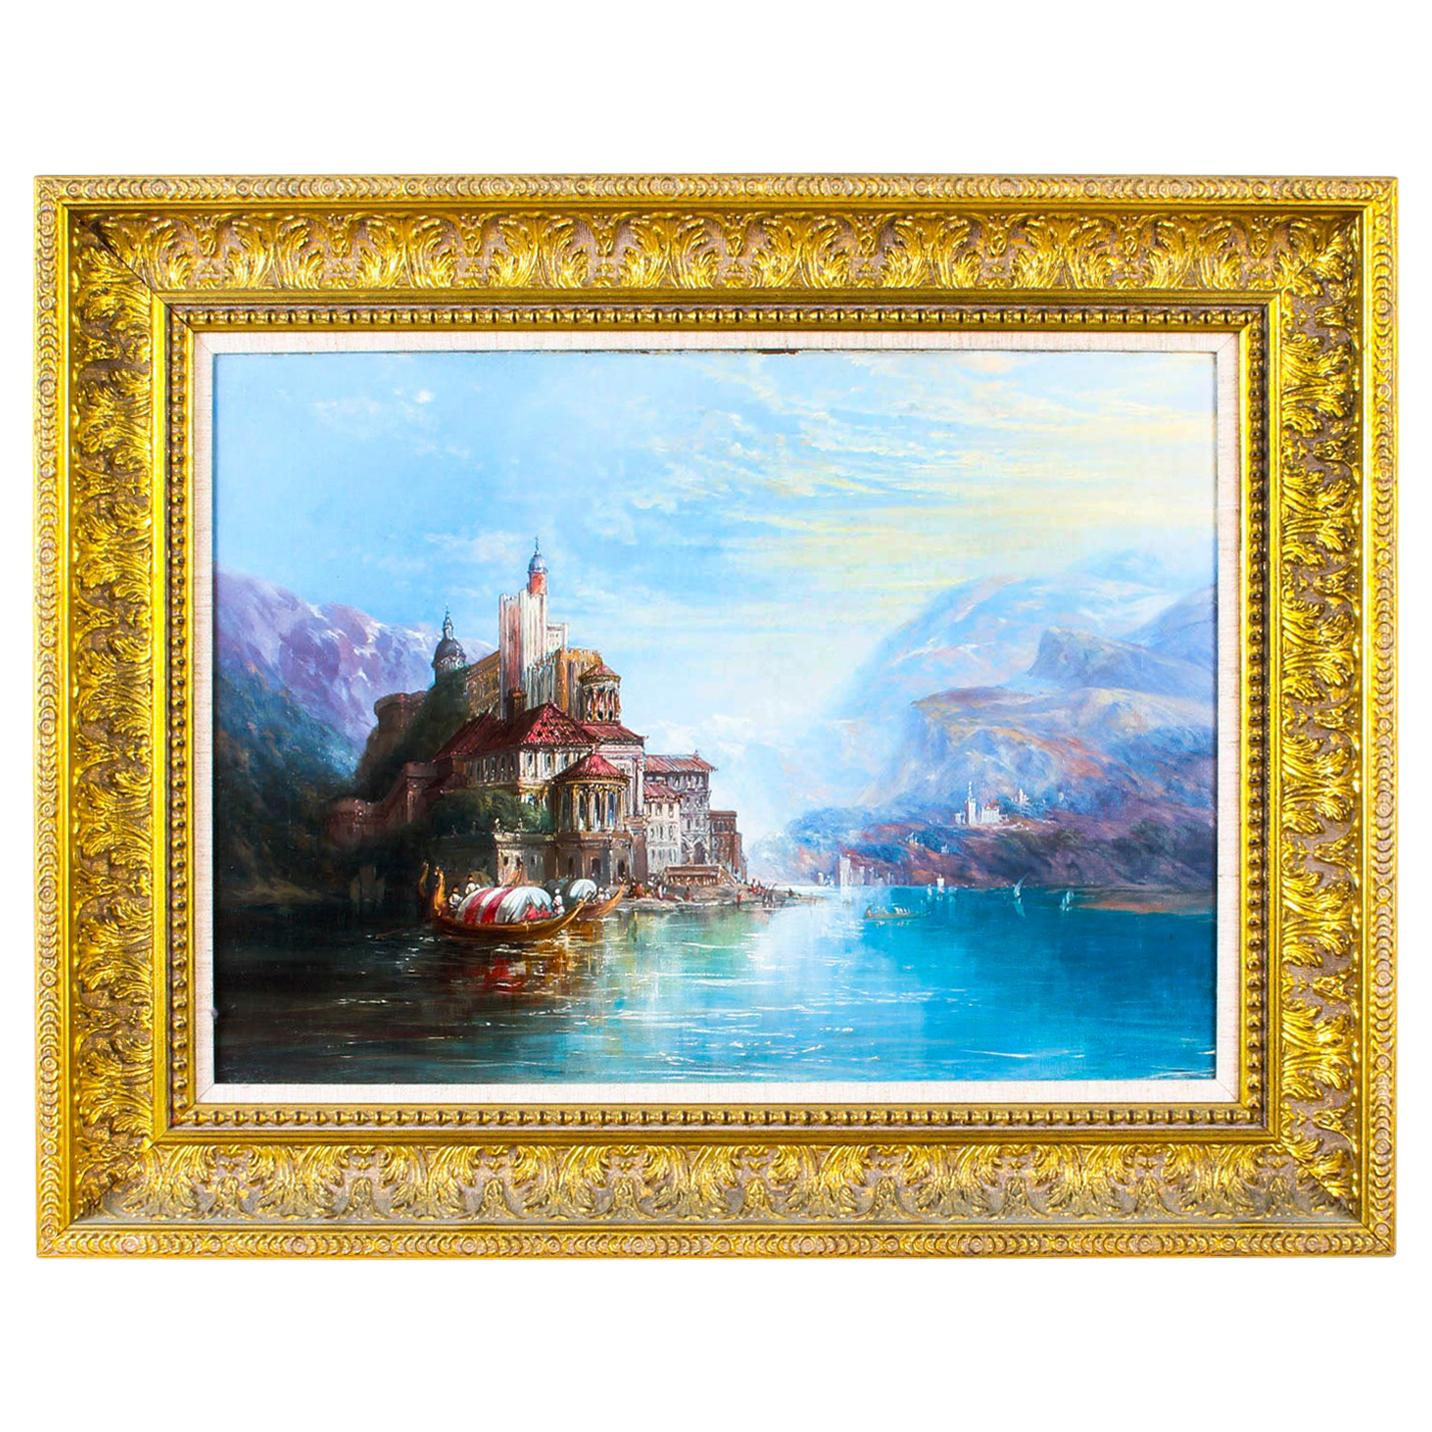 Antique Oil on Canvas Landscape Painting follower of Alfred Pollentine